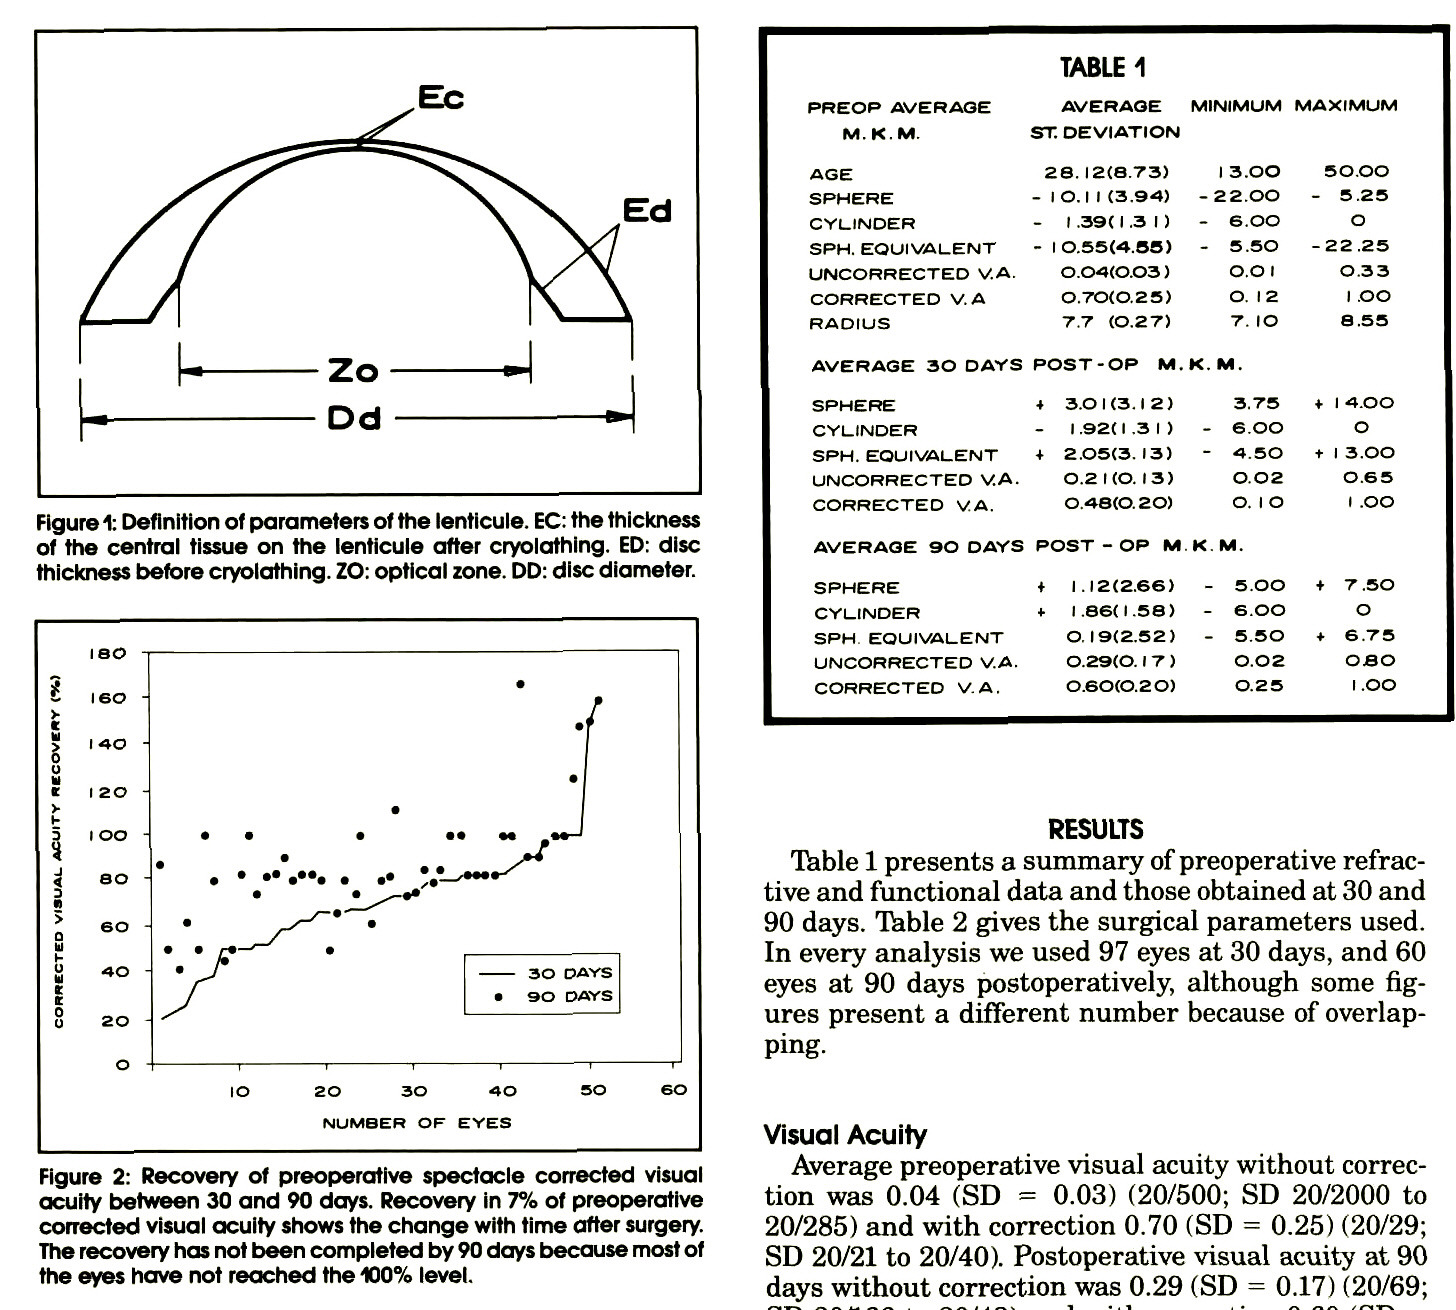 Figure 1: Definition of parameters of the lenticule. EC: the thickness of the central tissue on the lenticule after cryolathing. ED: disc thickness before cryolathing. ZO: optical zone. DD: disc diameter.Figure 2: Recovery of preoperative spectacle corrected visual acuity between 30 and 90 days. Recovery in 7% of preoperative corrected visual acuity shows the change with time after surgery. The recovery has not been completed by 90 days because most of the eyes have not reached the 100% level.TABLE 1